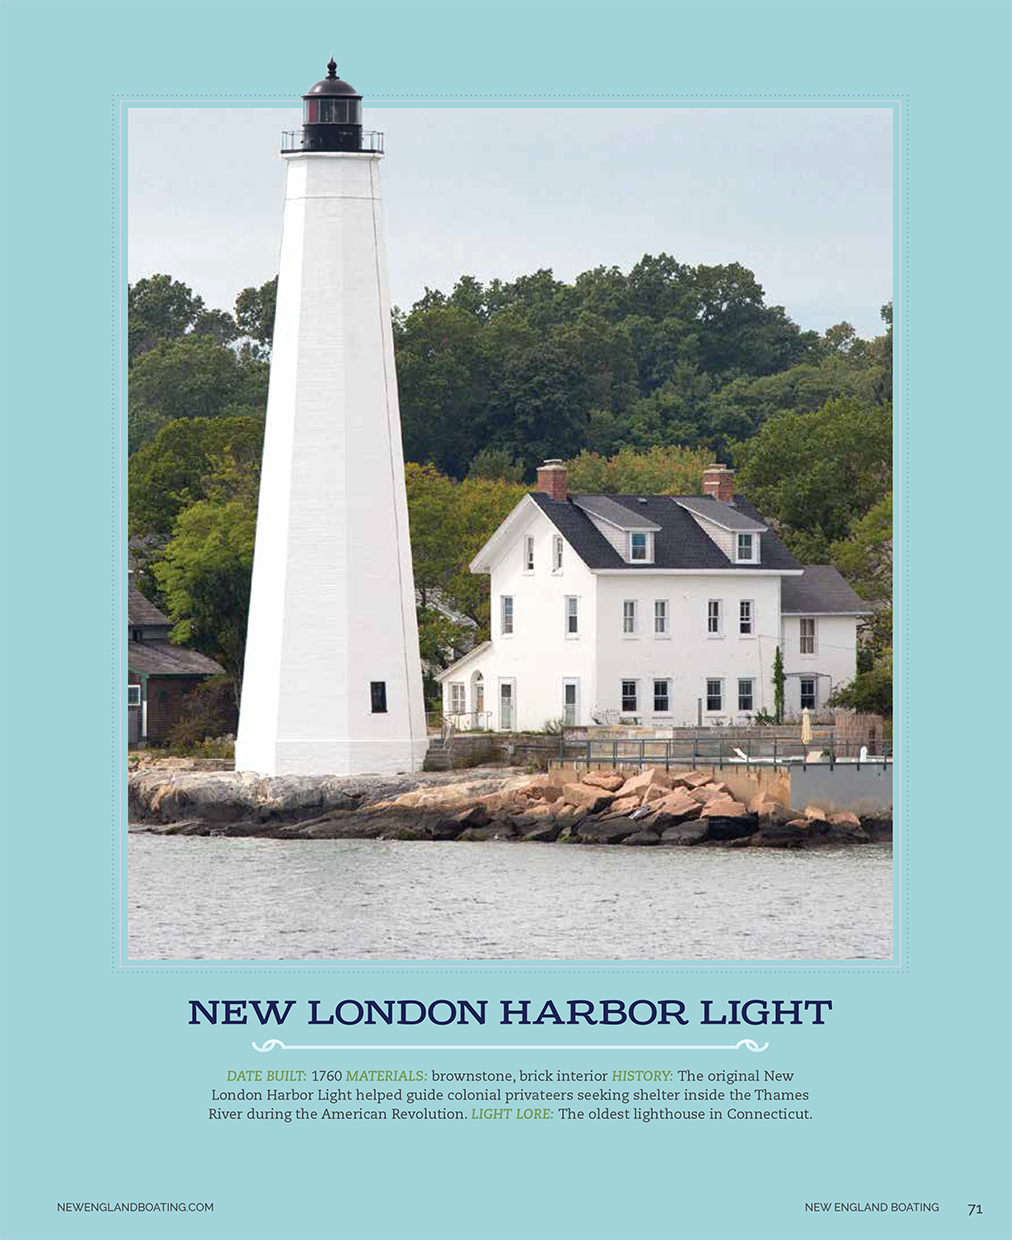 New-London-Harbor-Light-New-England-Boating-Caryn-B-Davis